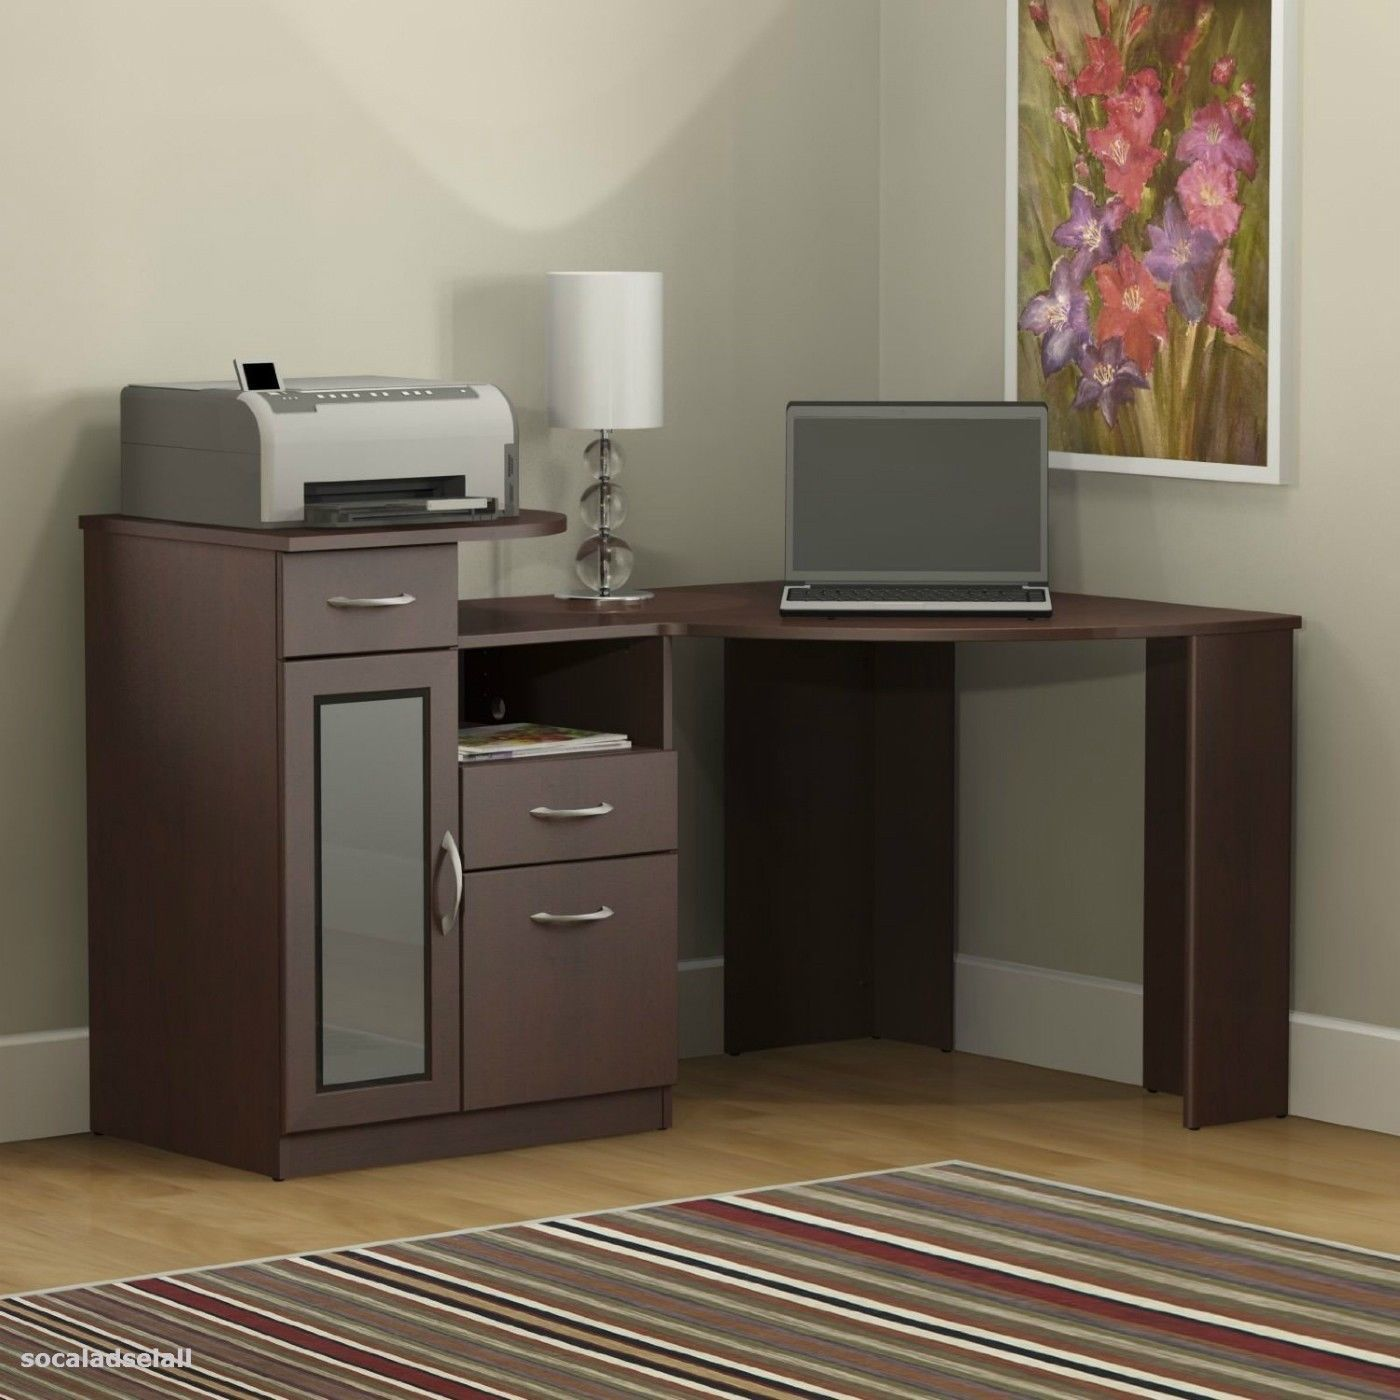 Image Result For Desk With Printer Drawer